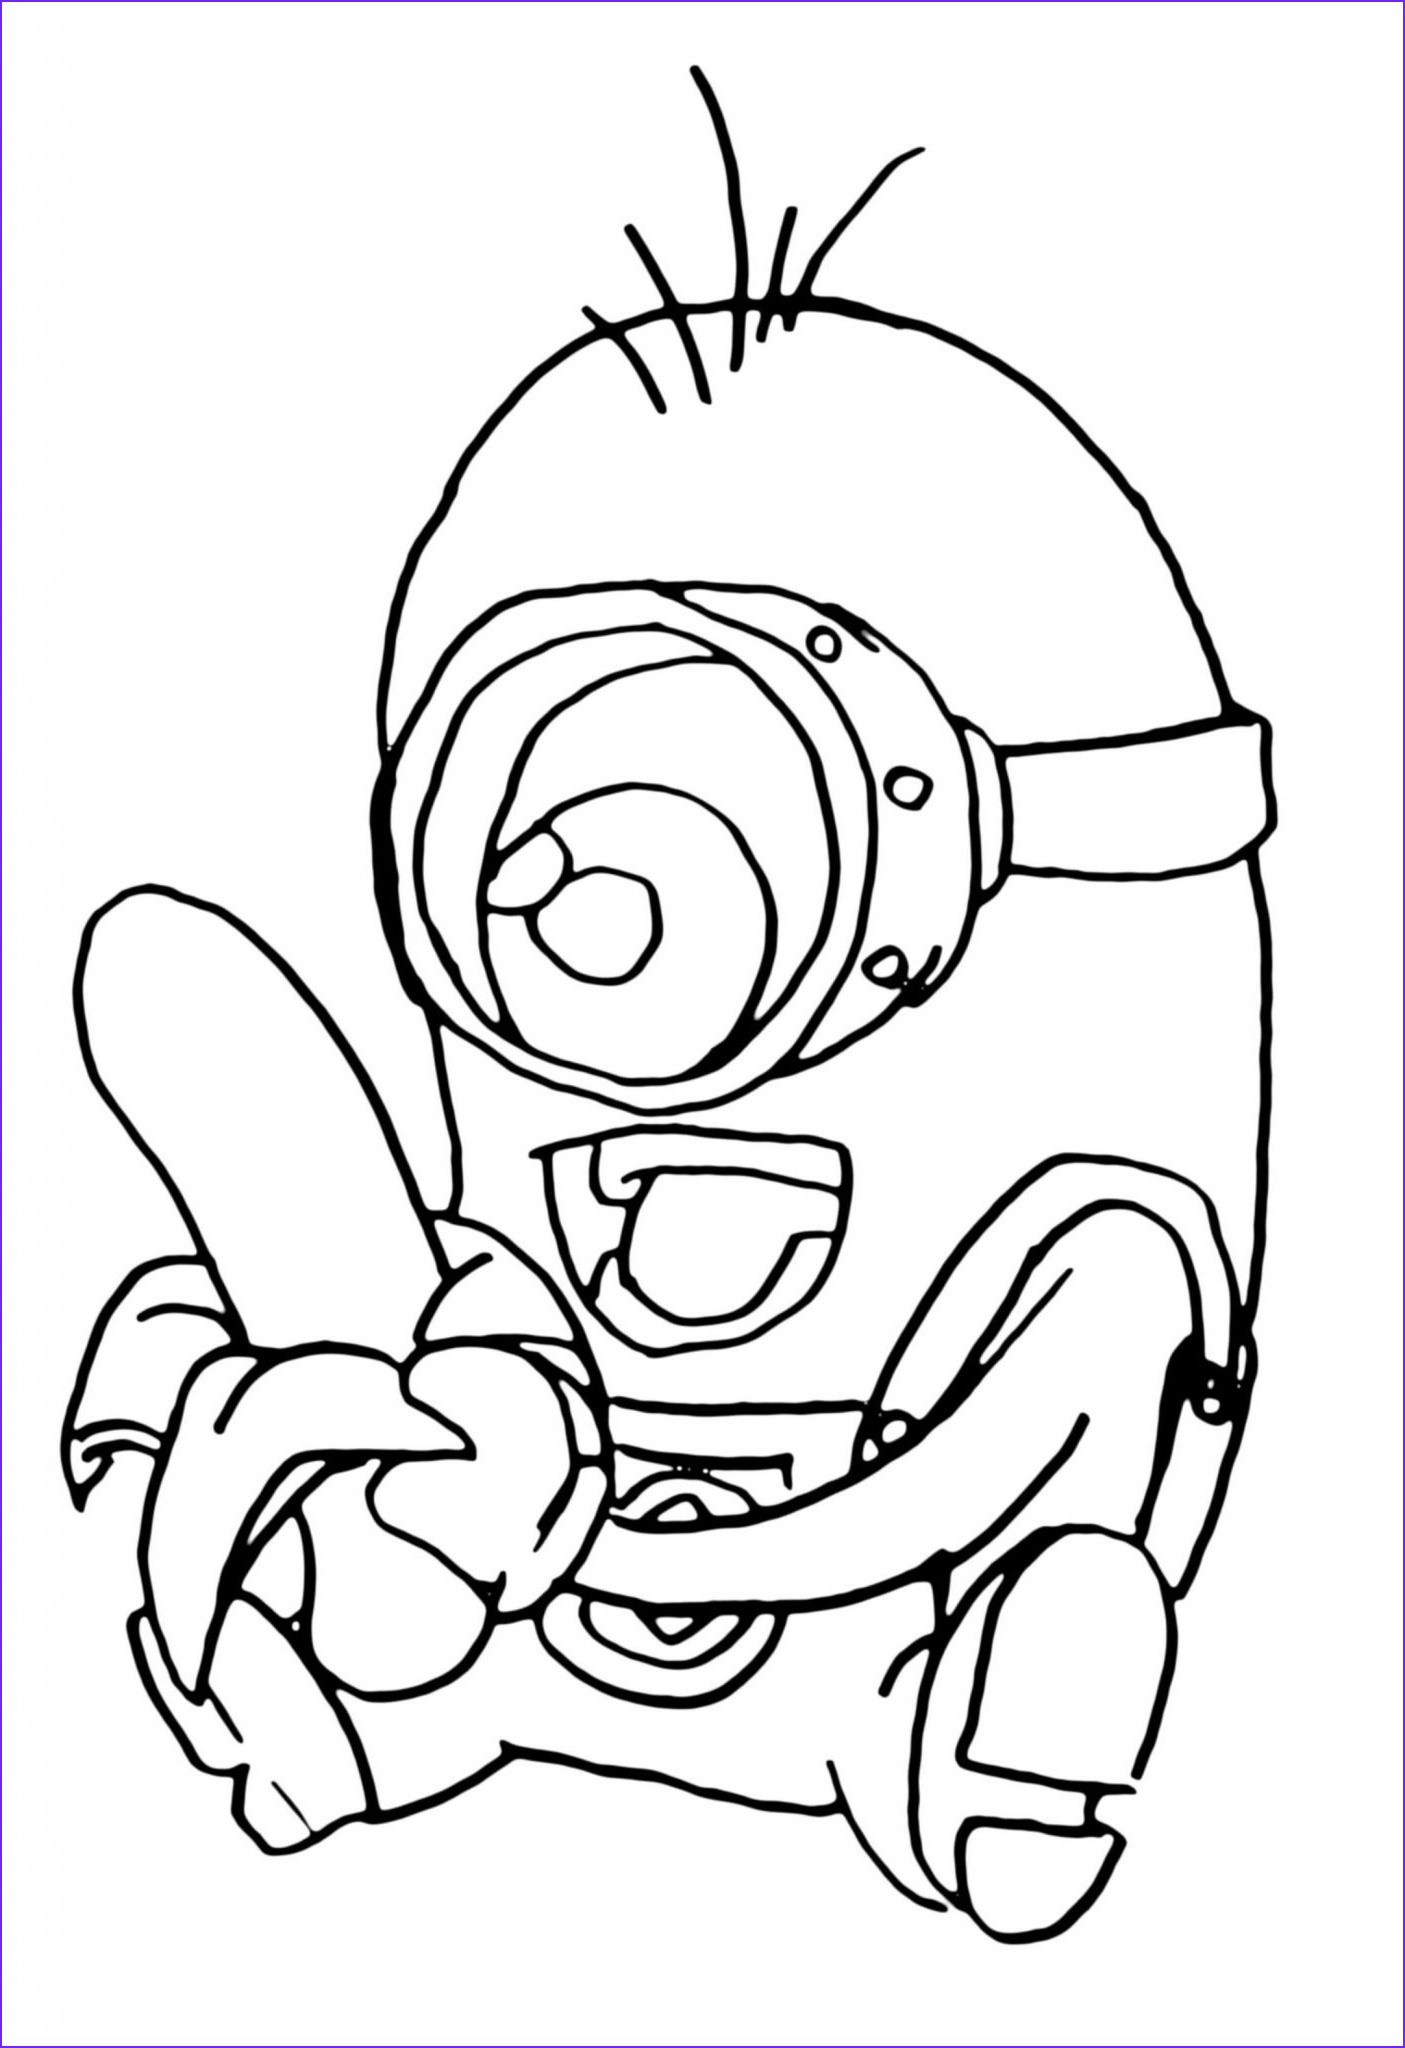 Minions Coloring Page Best Of Photography Print & Download Minion Coloring Pages for Kids to Have